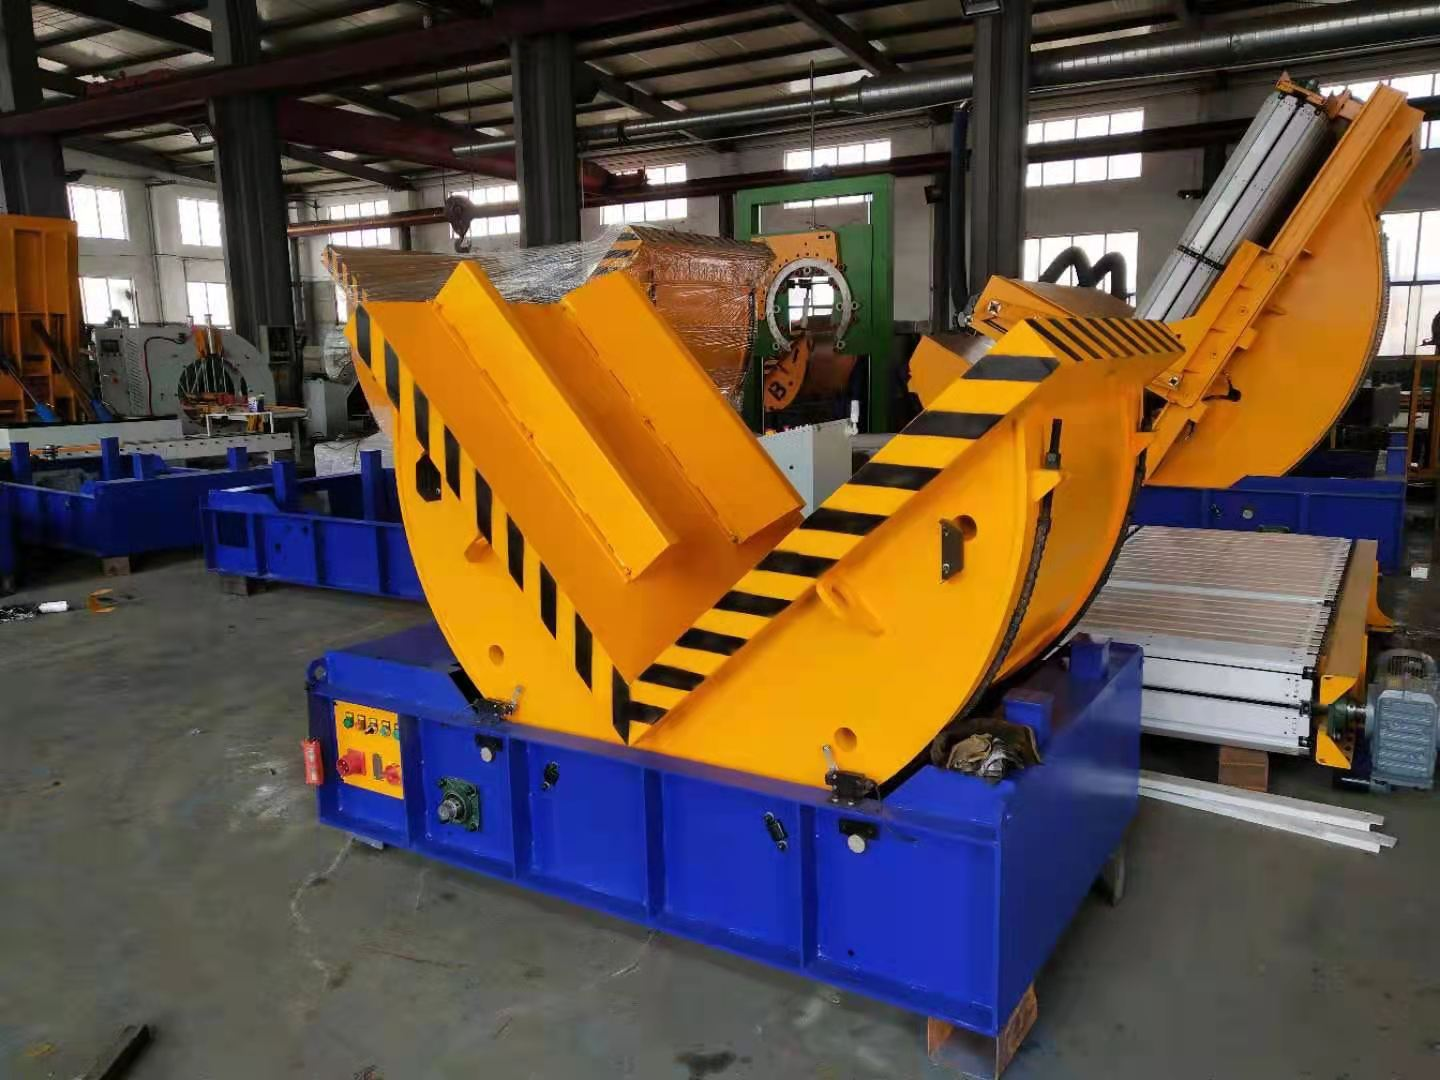 Site photos of Coil Upender (5 tons, 1.2m x 1.2m)-3.jpg